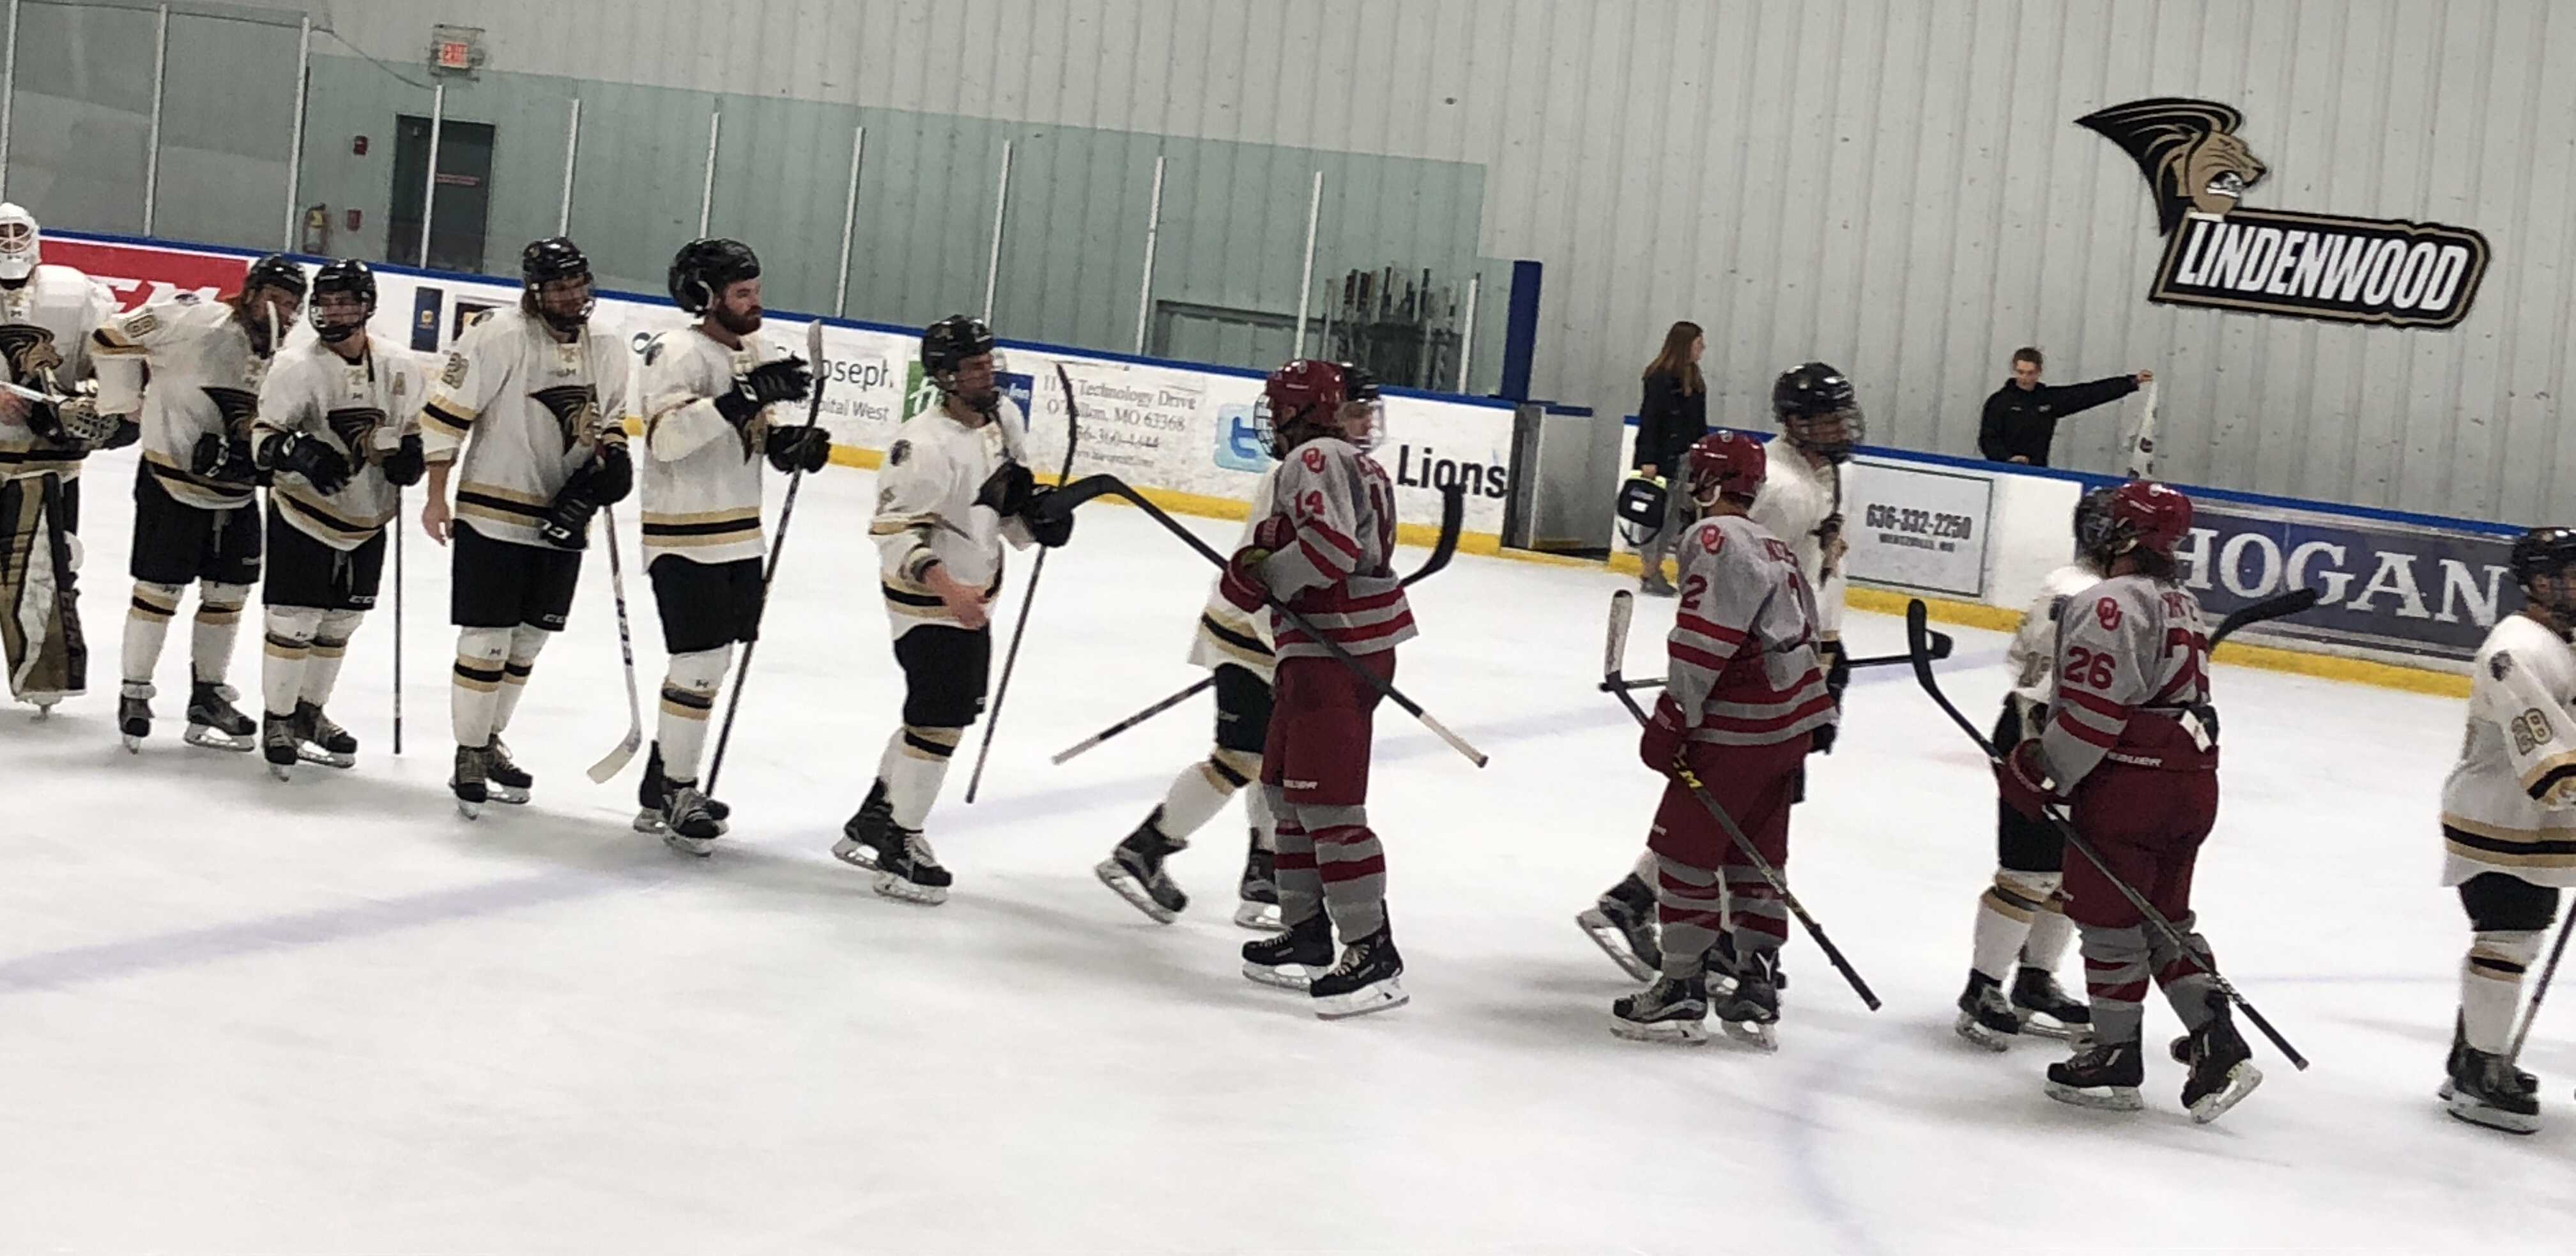 The Lindenwood Lions shake hands with the University of Oklahoma Sooners after their weekend sweep at the Wentzville Ice Arena. The Lions won both games, the first game 4-1 and the second game 8-0.  Photo by Madeline Raineri.